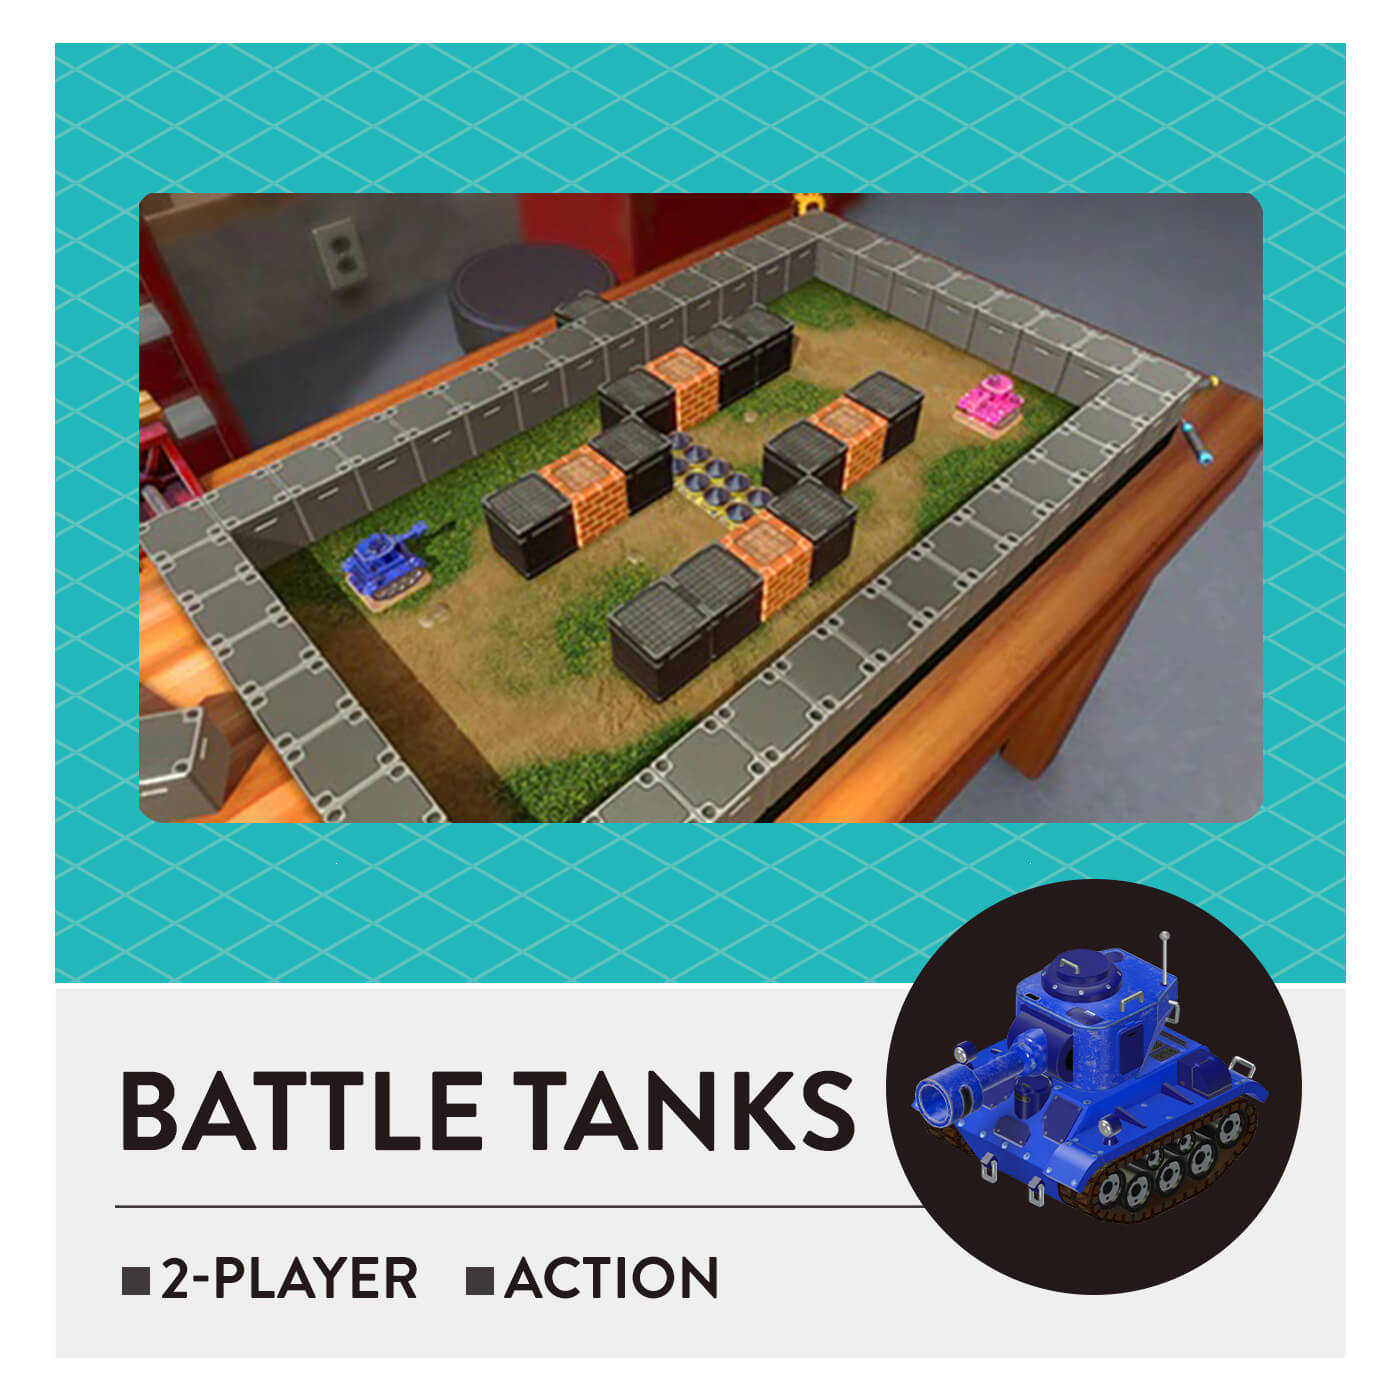 51 Worldwide Games - Battle Tanks